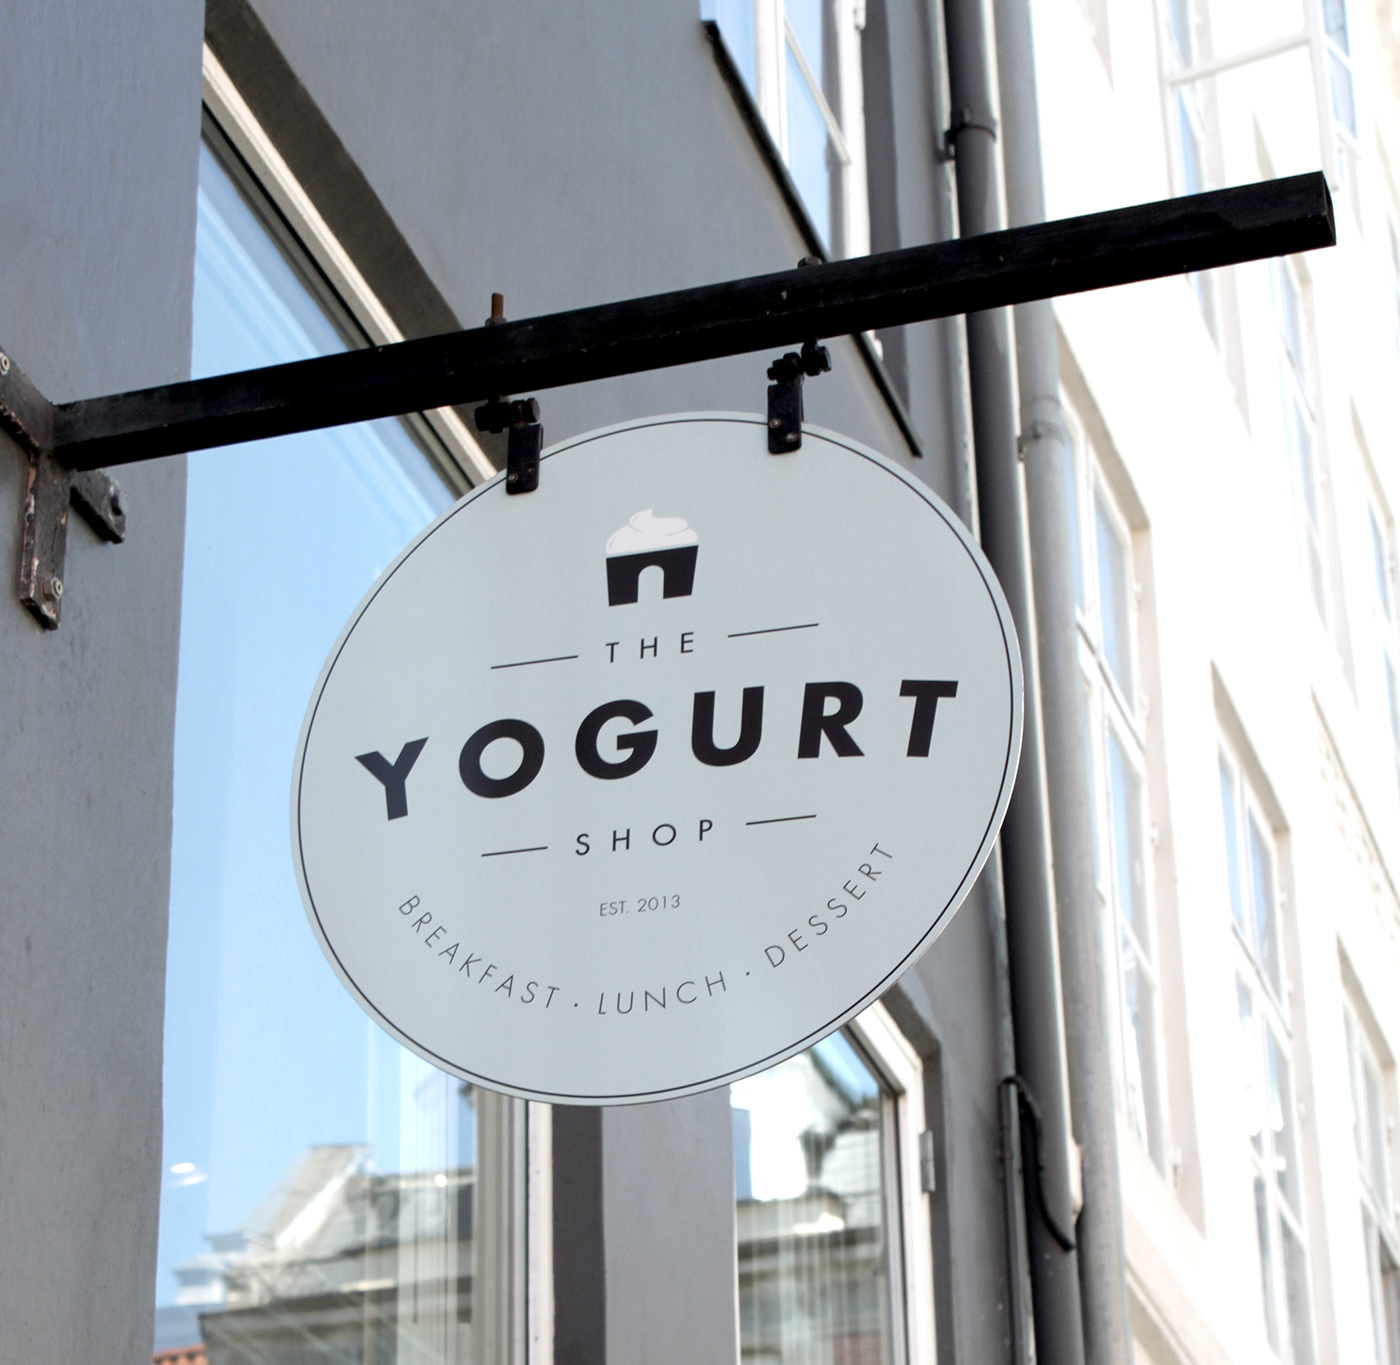 The Yogurt Shop